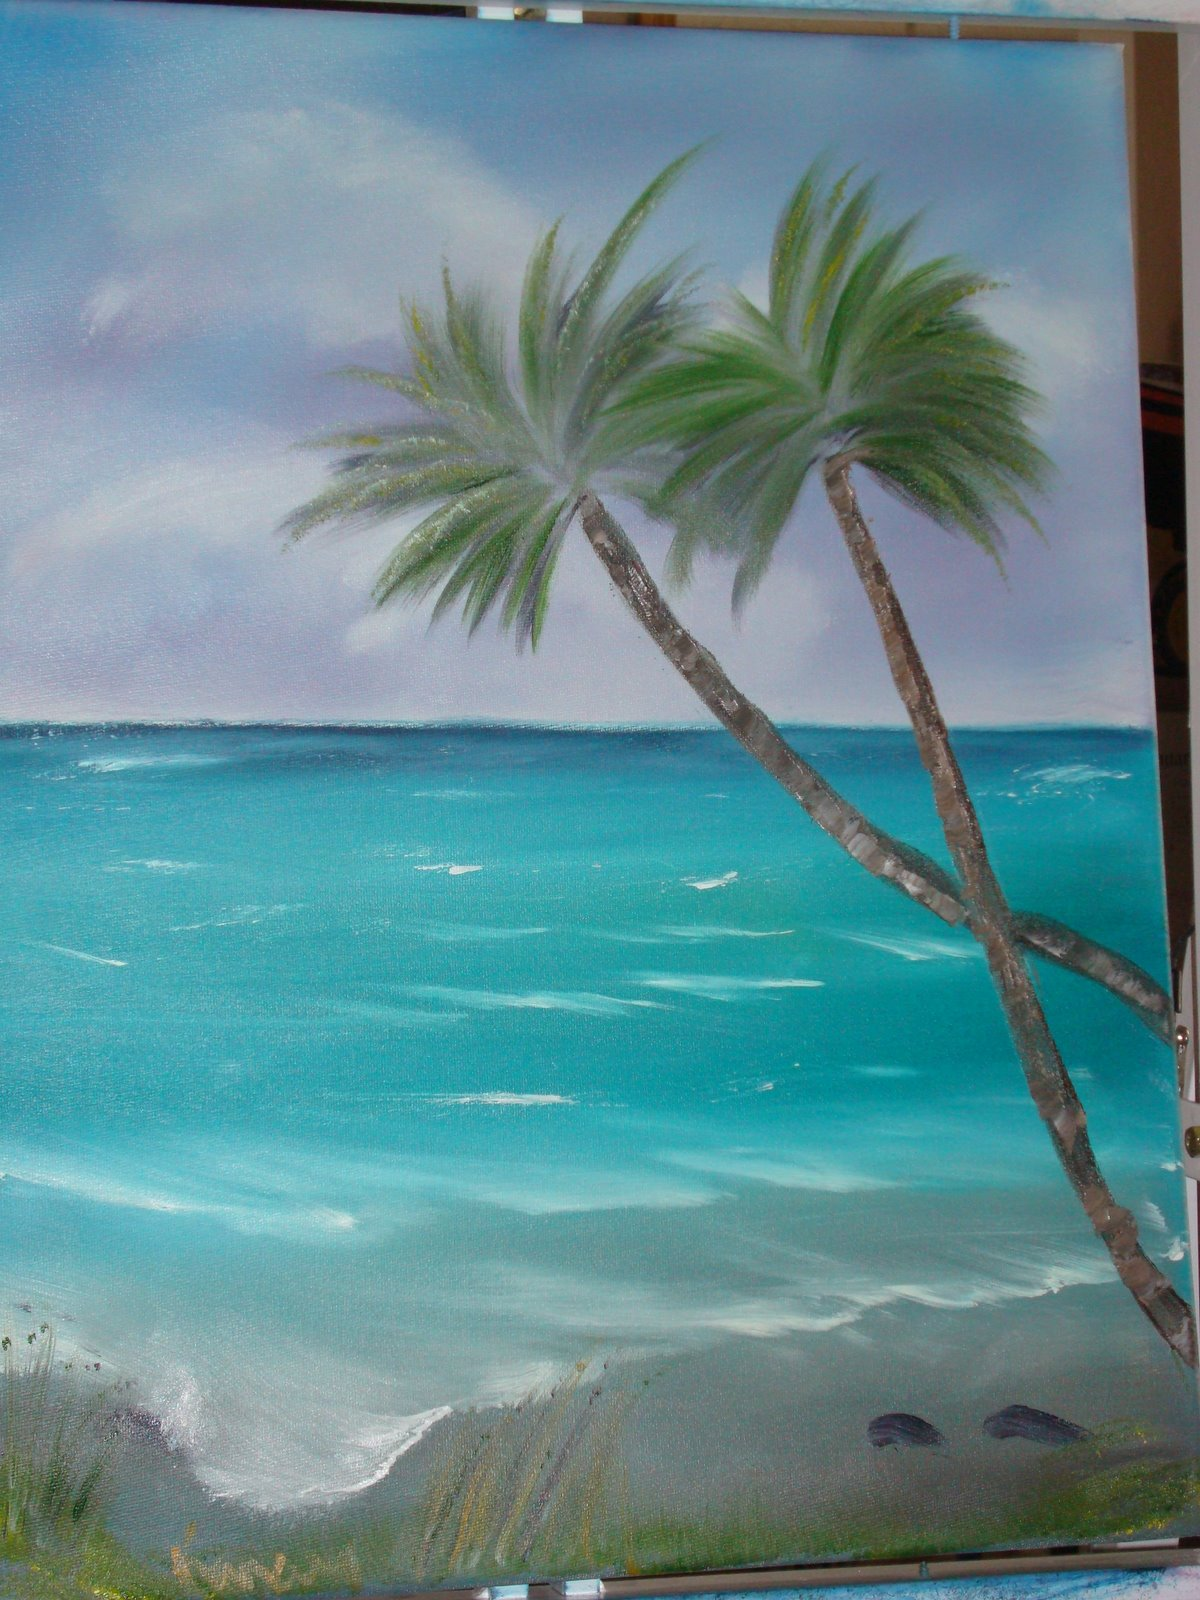 16 x 20 Palms over water_SEA 1009